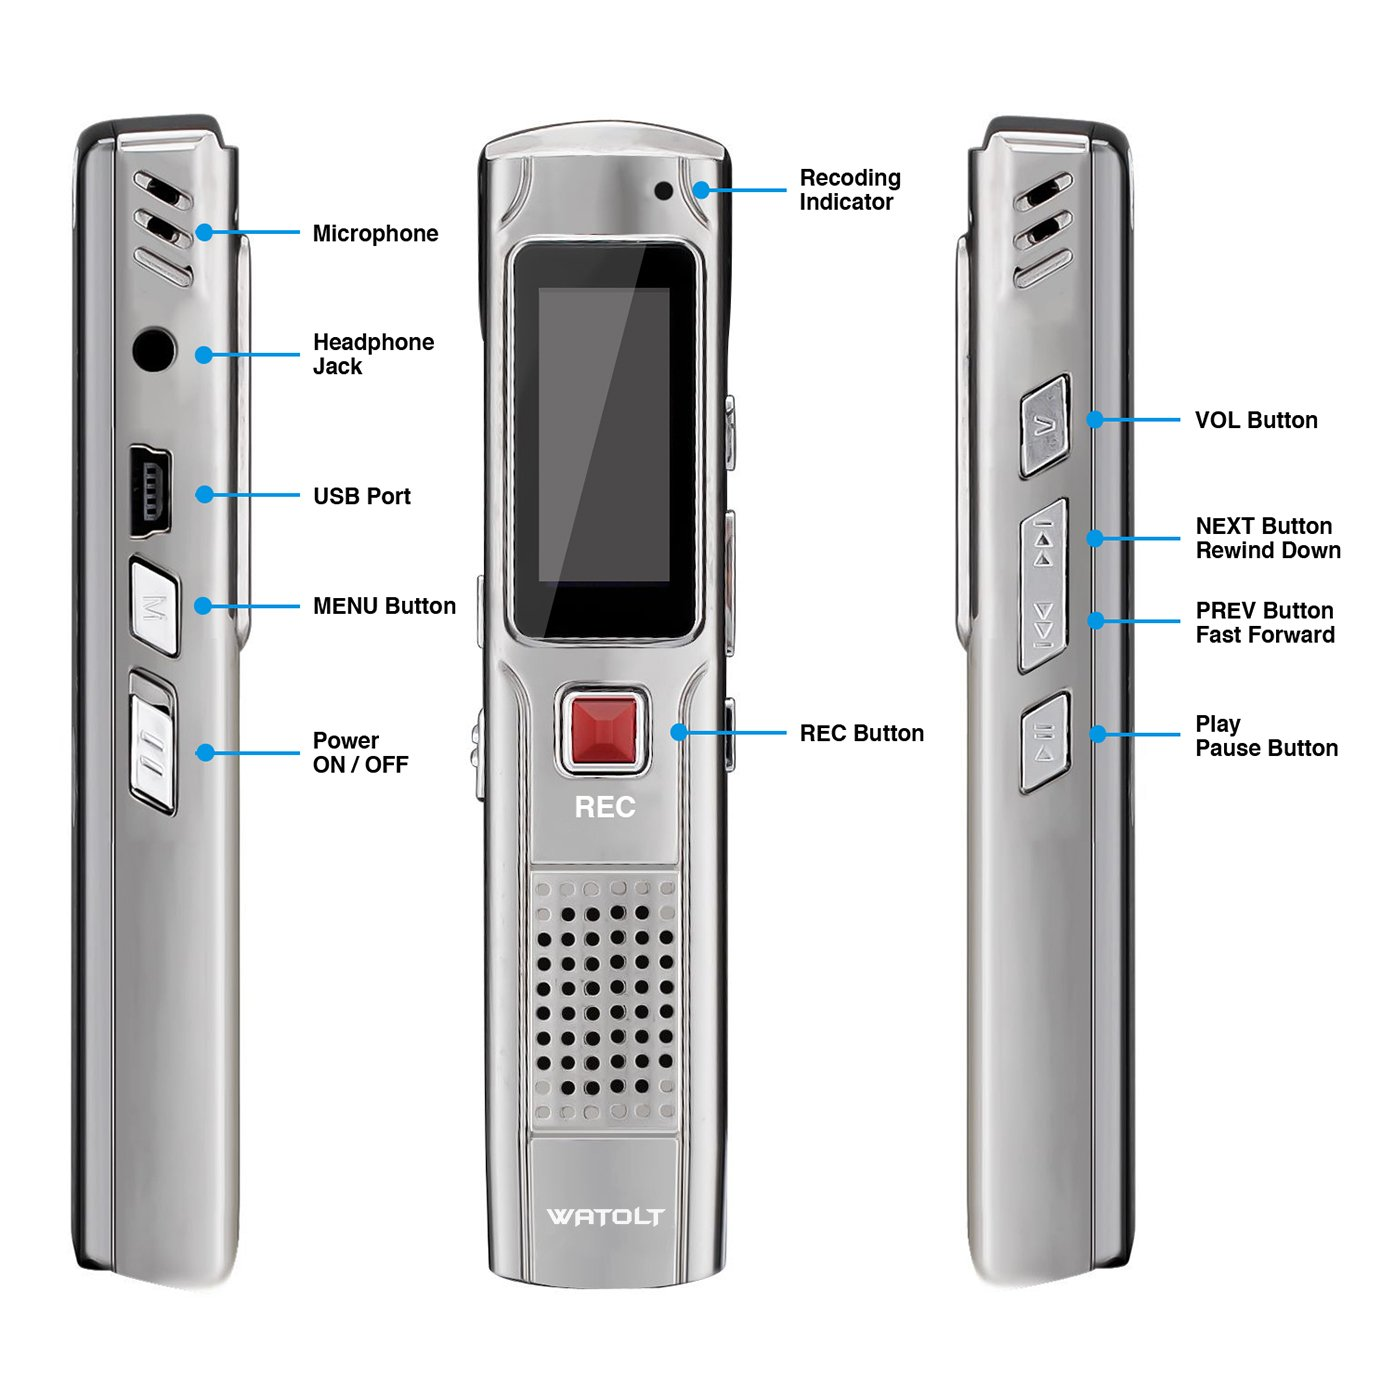 Digital Voice Recorder Rechargeable Dictaphone - MP3 Player - 25 Hours USB Audio Recordable Pen - for Students College Lectures (8GB) by Watolt (Image #2)